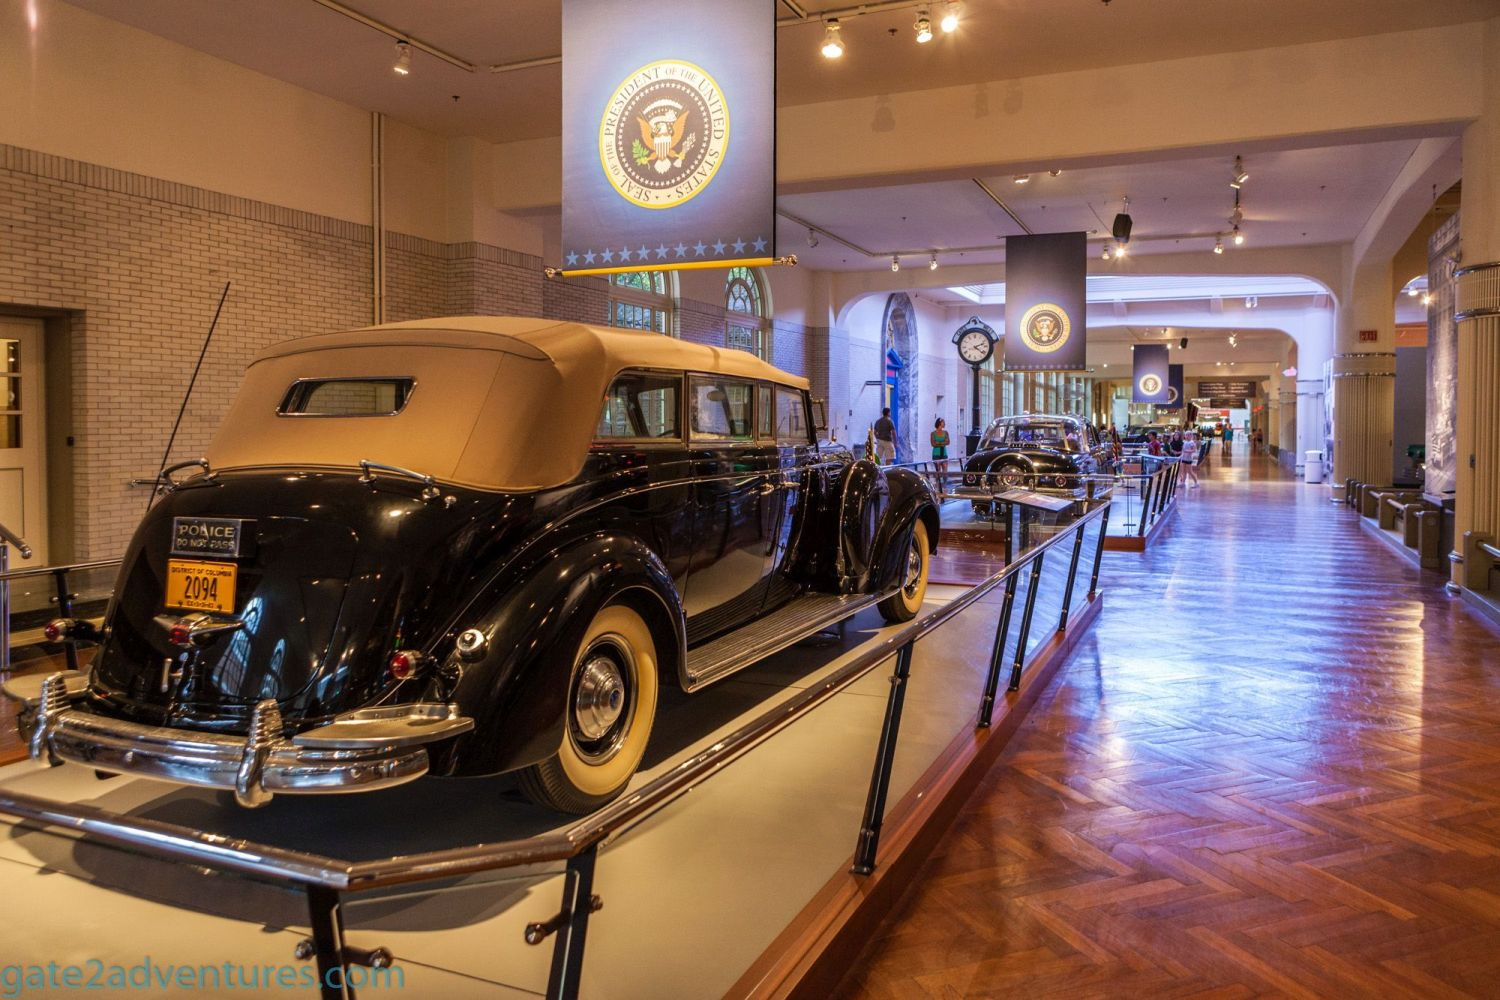 First Car Under 1000 >> The Henry Ford Museum, Rouge Factory Tour and Greenfield Village - Gate to Adventures